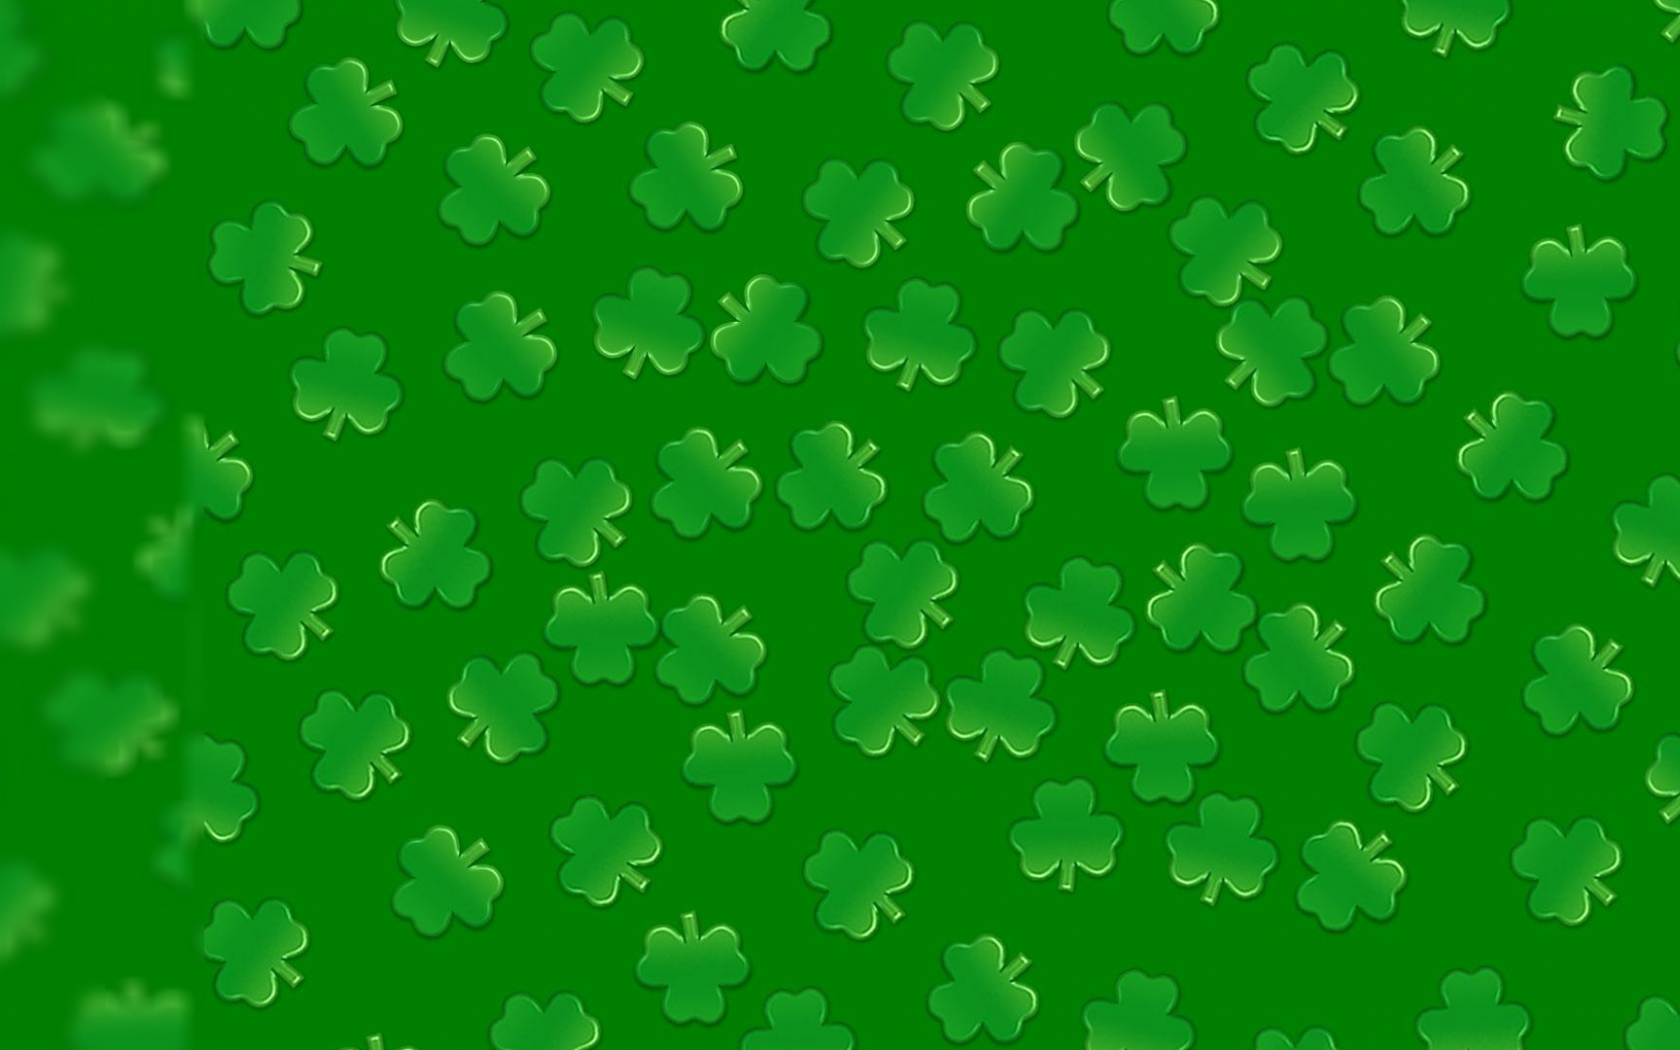 Free Download St Patricks Day Wallpaper St Patrick 39 S Day Hd